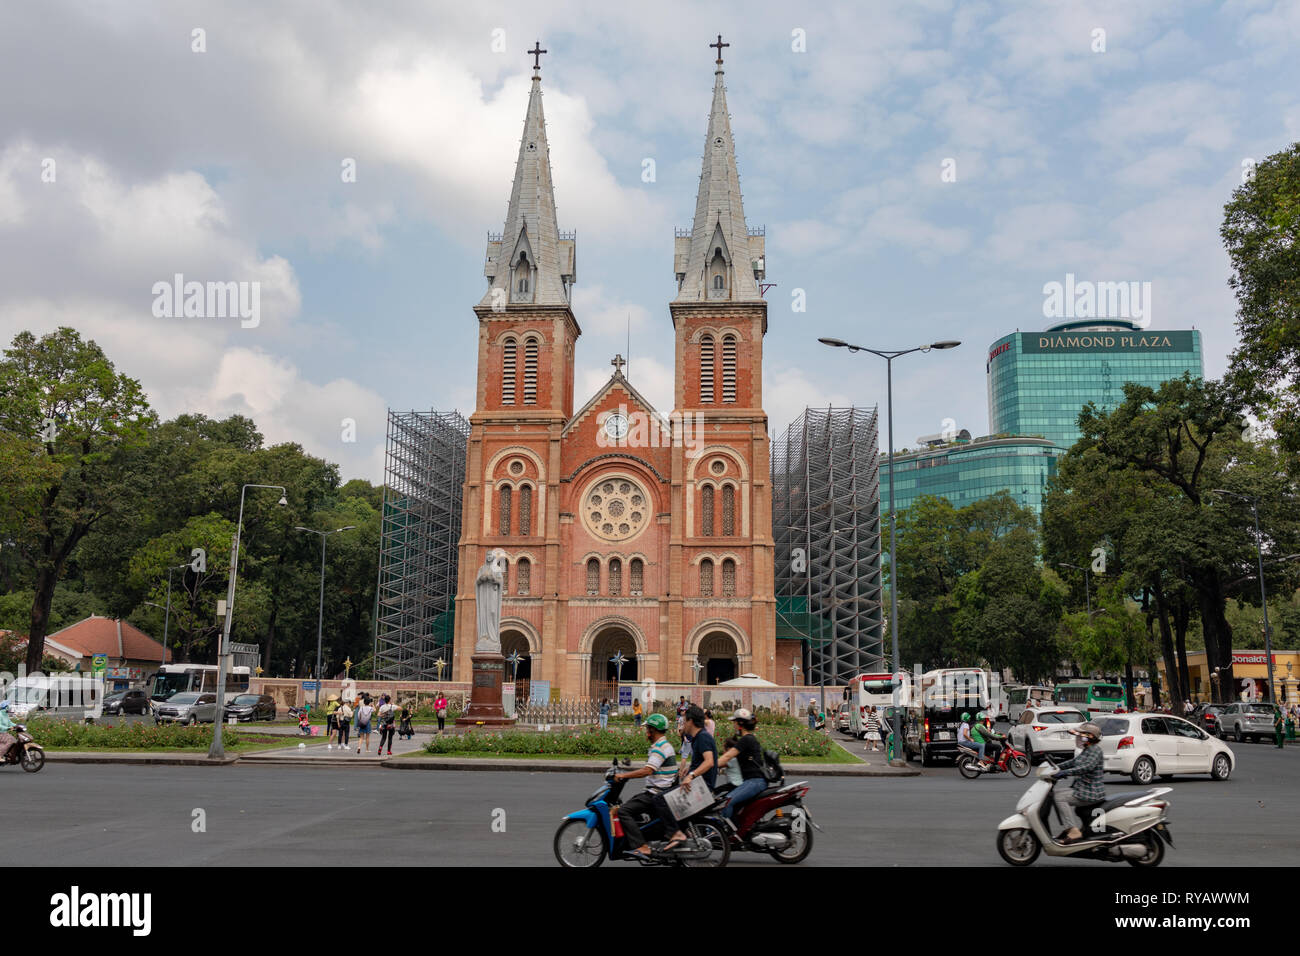 District 1 ,Ho Chi Minh City, Vietnam, Wednesday 13th March 2019.  Saigon weather::Hot spring day with highs of 36 degrees. Saigon Notre-Dame Basilica was constructed from 1863-1880 during the French colonial occupation of Vietnam. The cathedral displays distinct neo-Romanesque features, such as the two giant bell towers (holding six bronze bells), ornate stained glass windows, and a red brick facade that fascinated locals during its construction. The bricks were imported from Marseilles and were incredibly unique during that time period. It was conferred a Basilica by the Vatican in 1959 and  - Stock Image